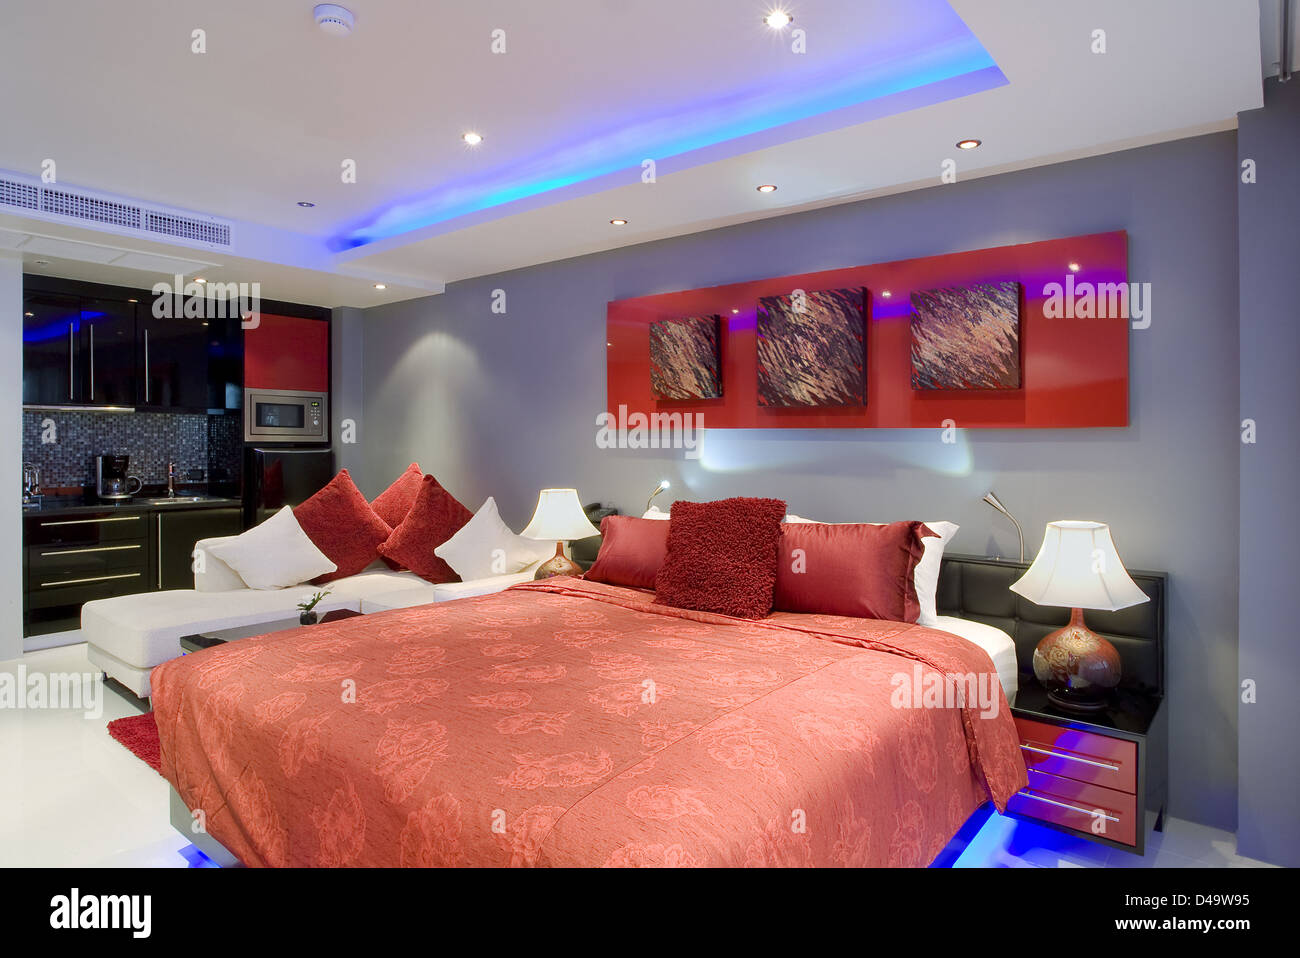 Panoramic view of nice stylish modern bedroom. Images on the wall were changed. - Stock Image